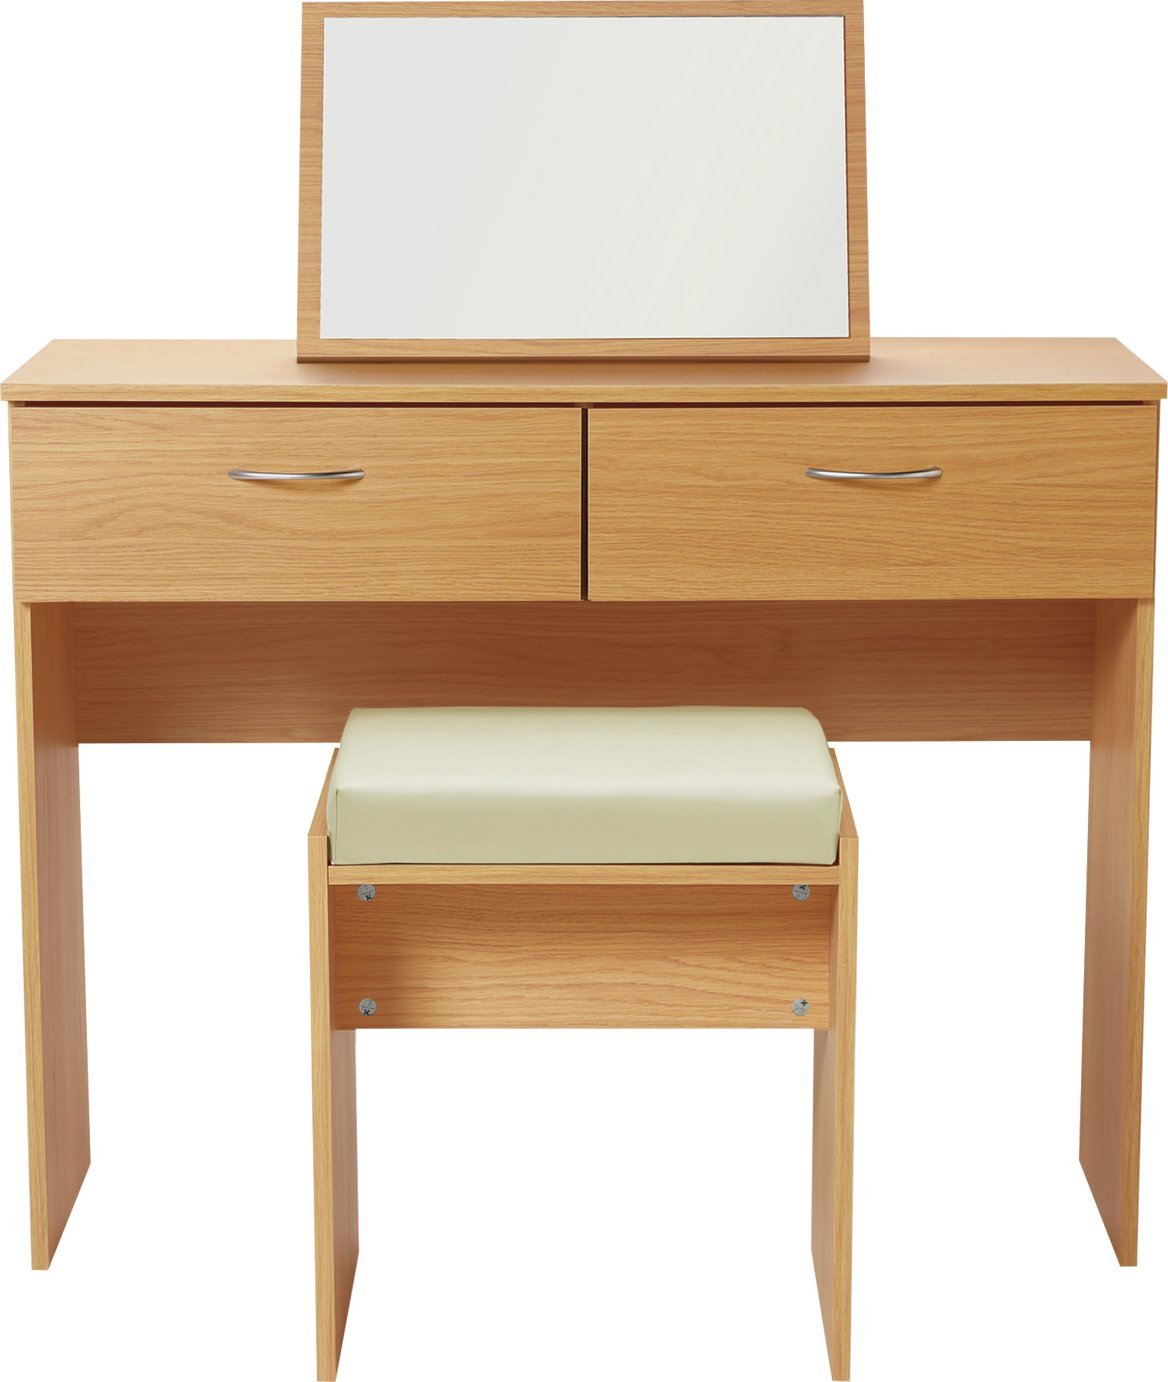 Image of Collection Cheval Dressing Table, Stool & Mirror - Beech Eff